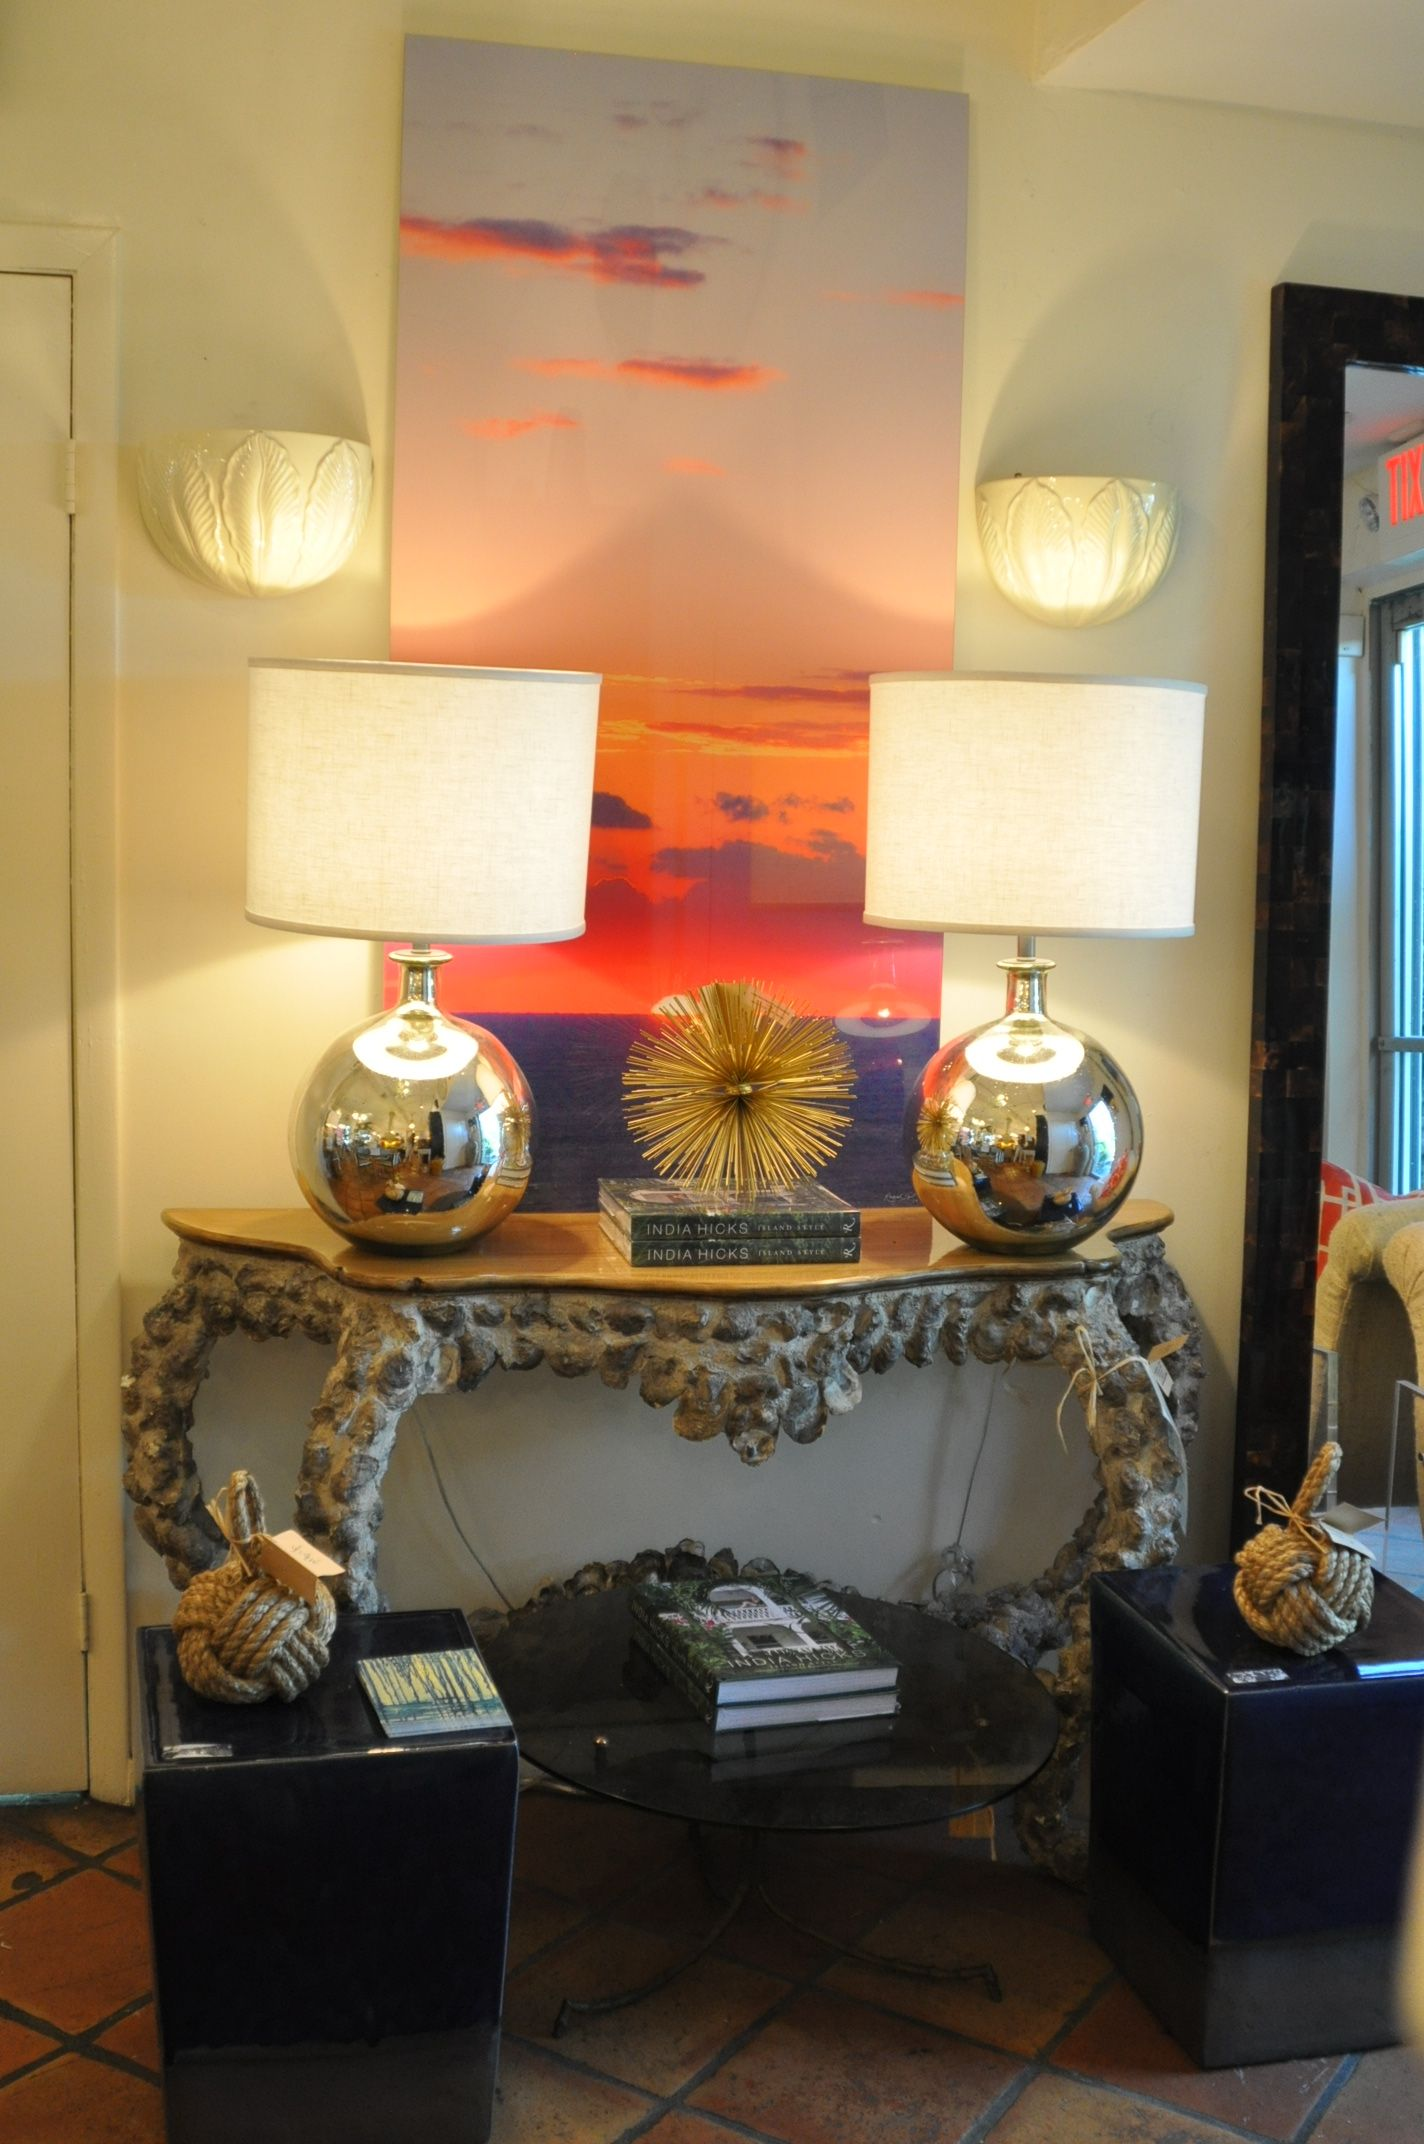 PalmBeach #Mecox #interiordesign #MecoxGardens #furniture #shopping on home library desk, home nail art, home office chair, home hair dryers, home decorators vanity, home living room furniture, home office desk, home kitchen island,